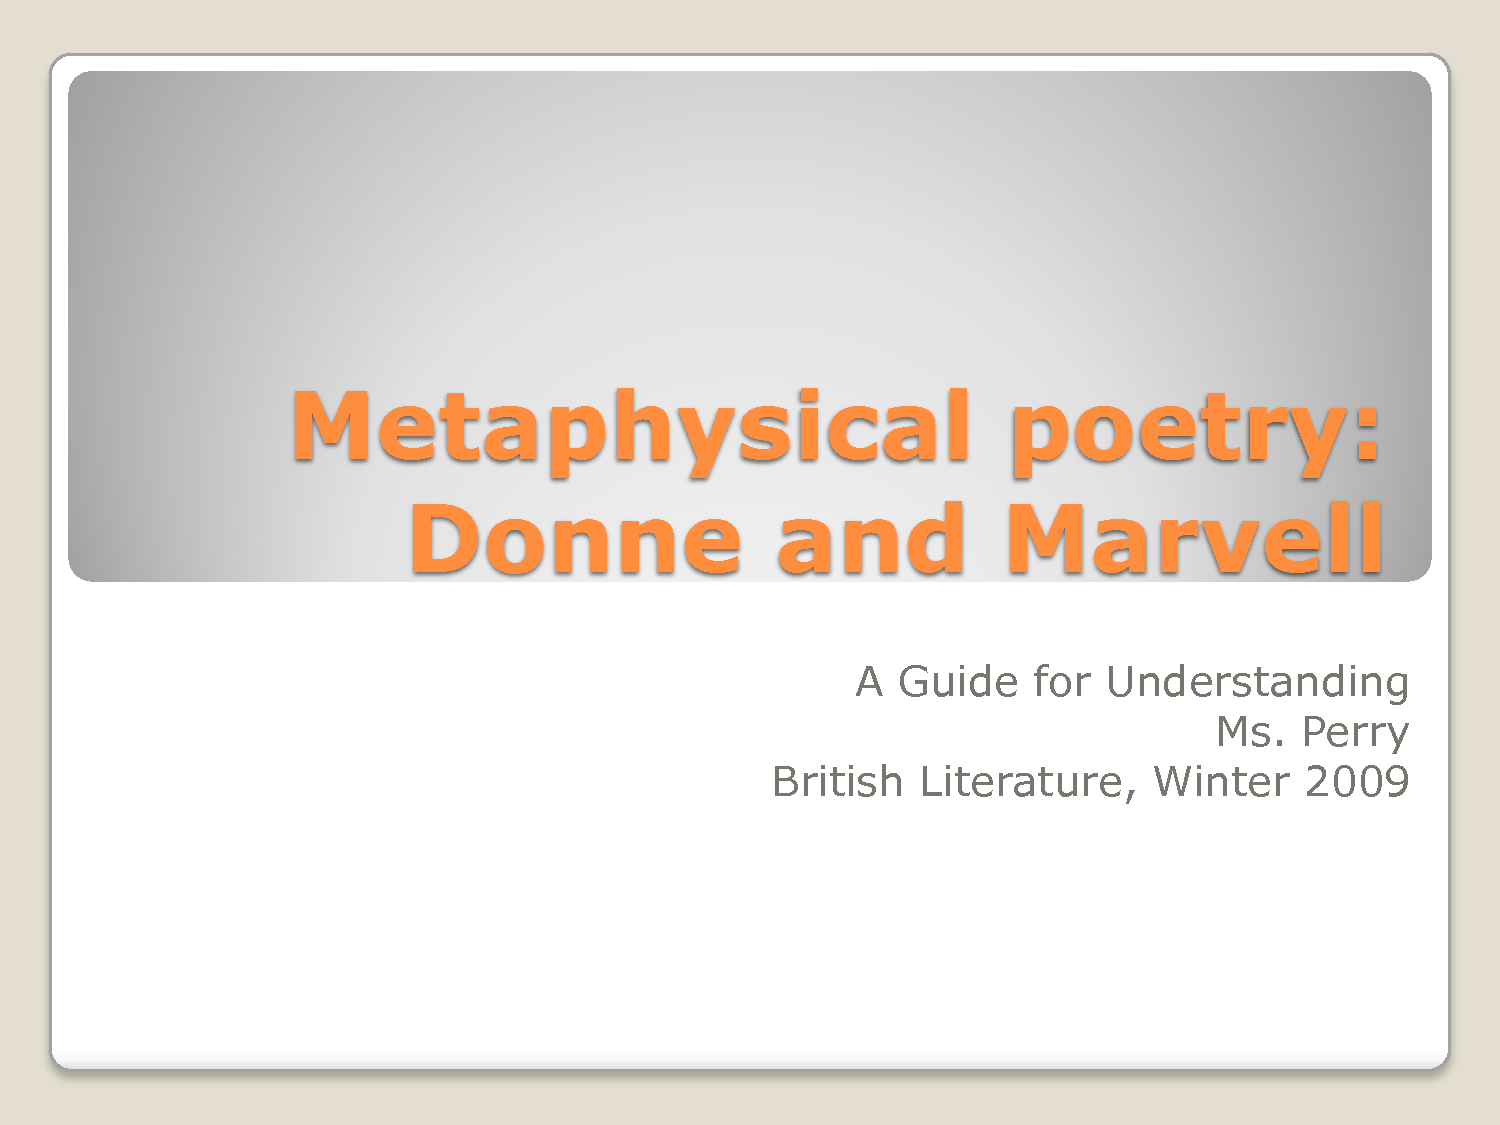 english literature metaphysical poem metaphysical poems are lyric poems they are brief but intense meditations characterized by striking use of wit irony and wordplay